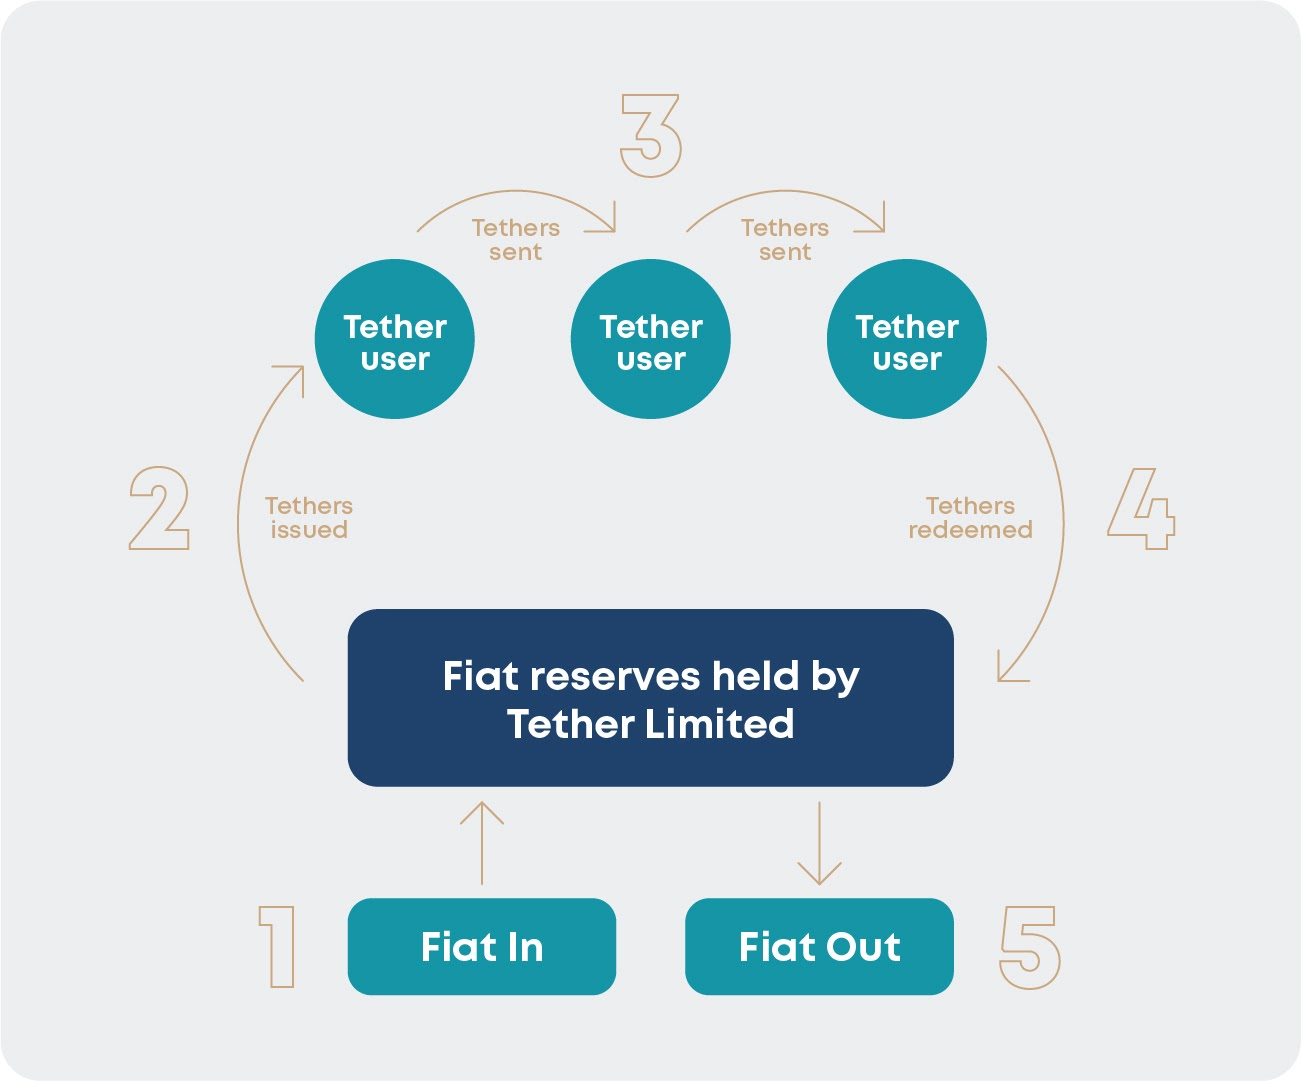 Tether's lifecycle diagram